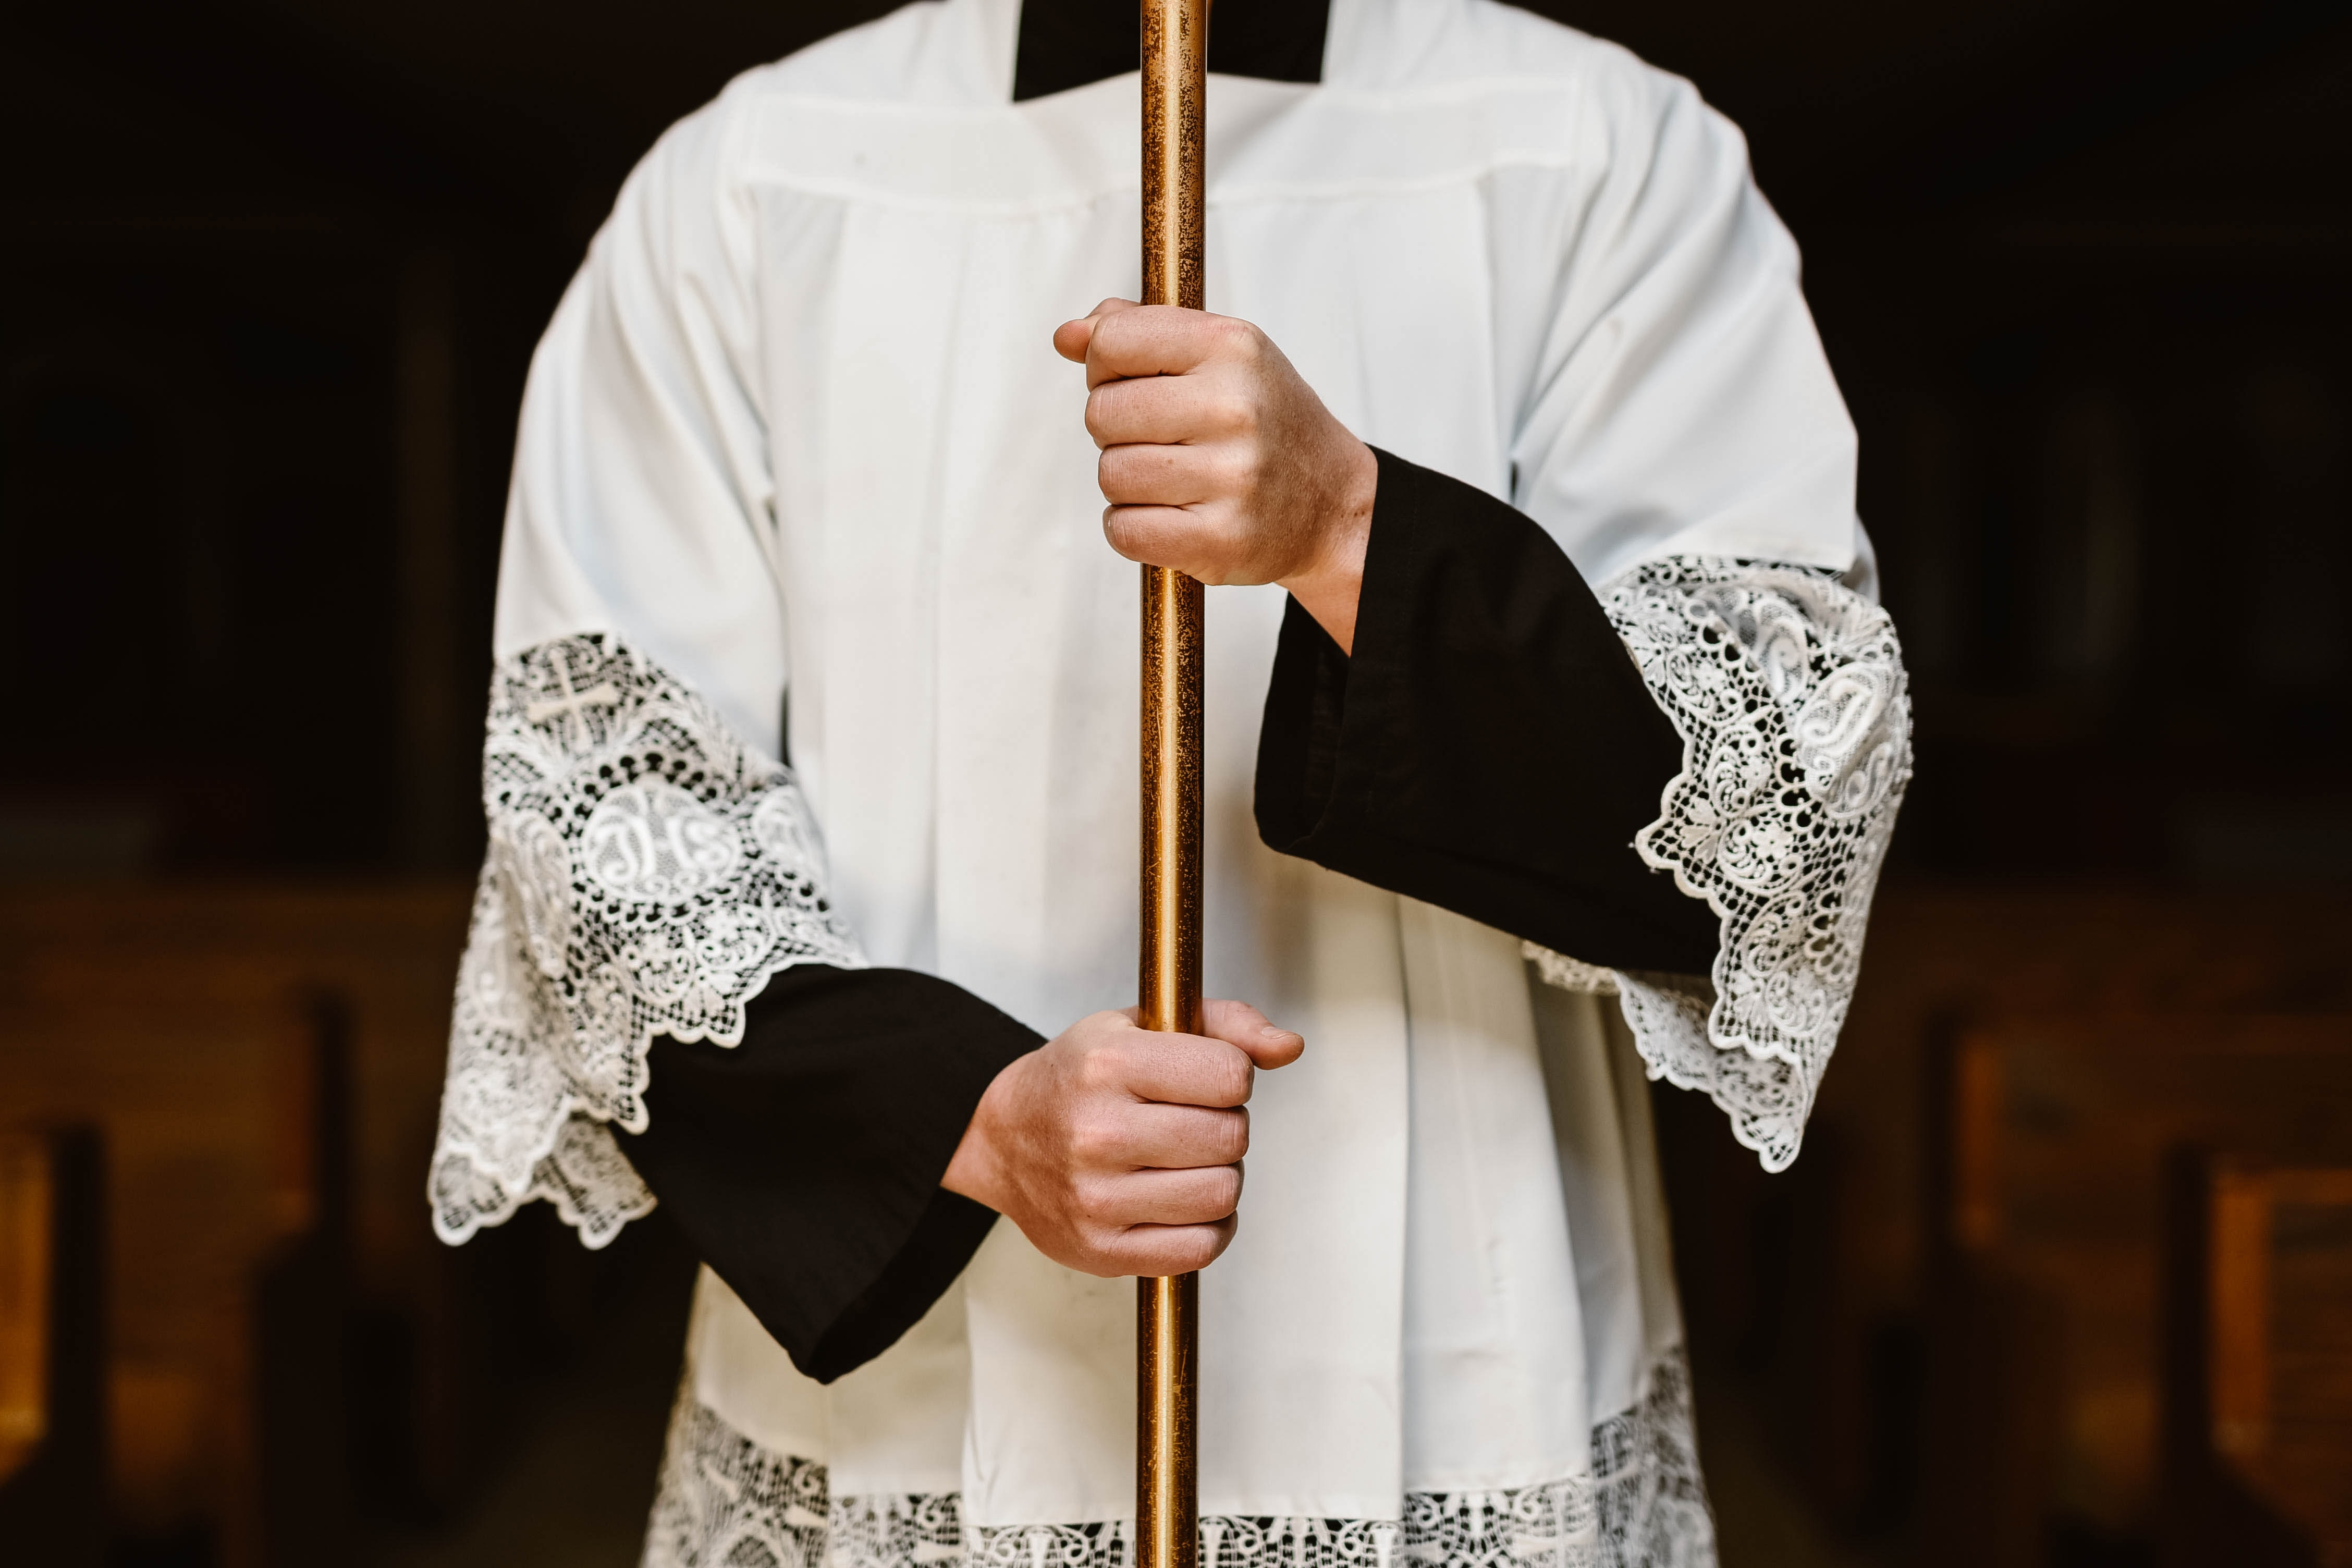 a catholic in a robe holding a staff